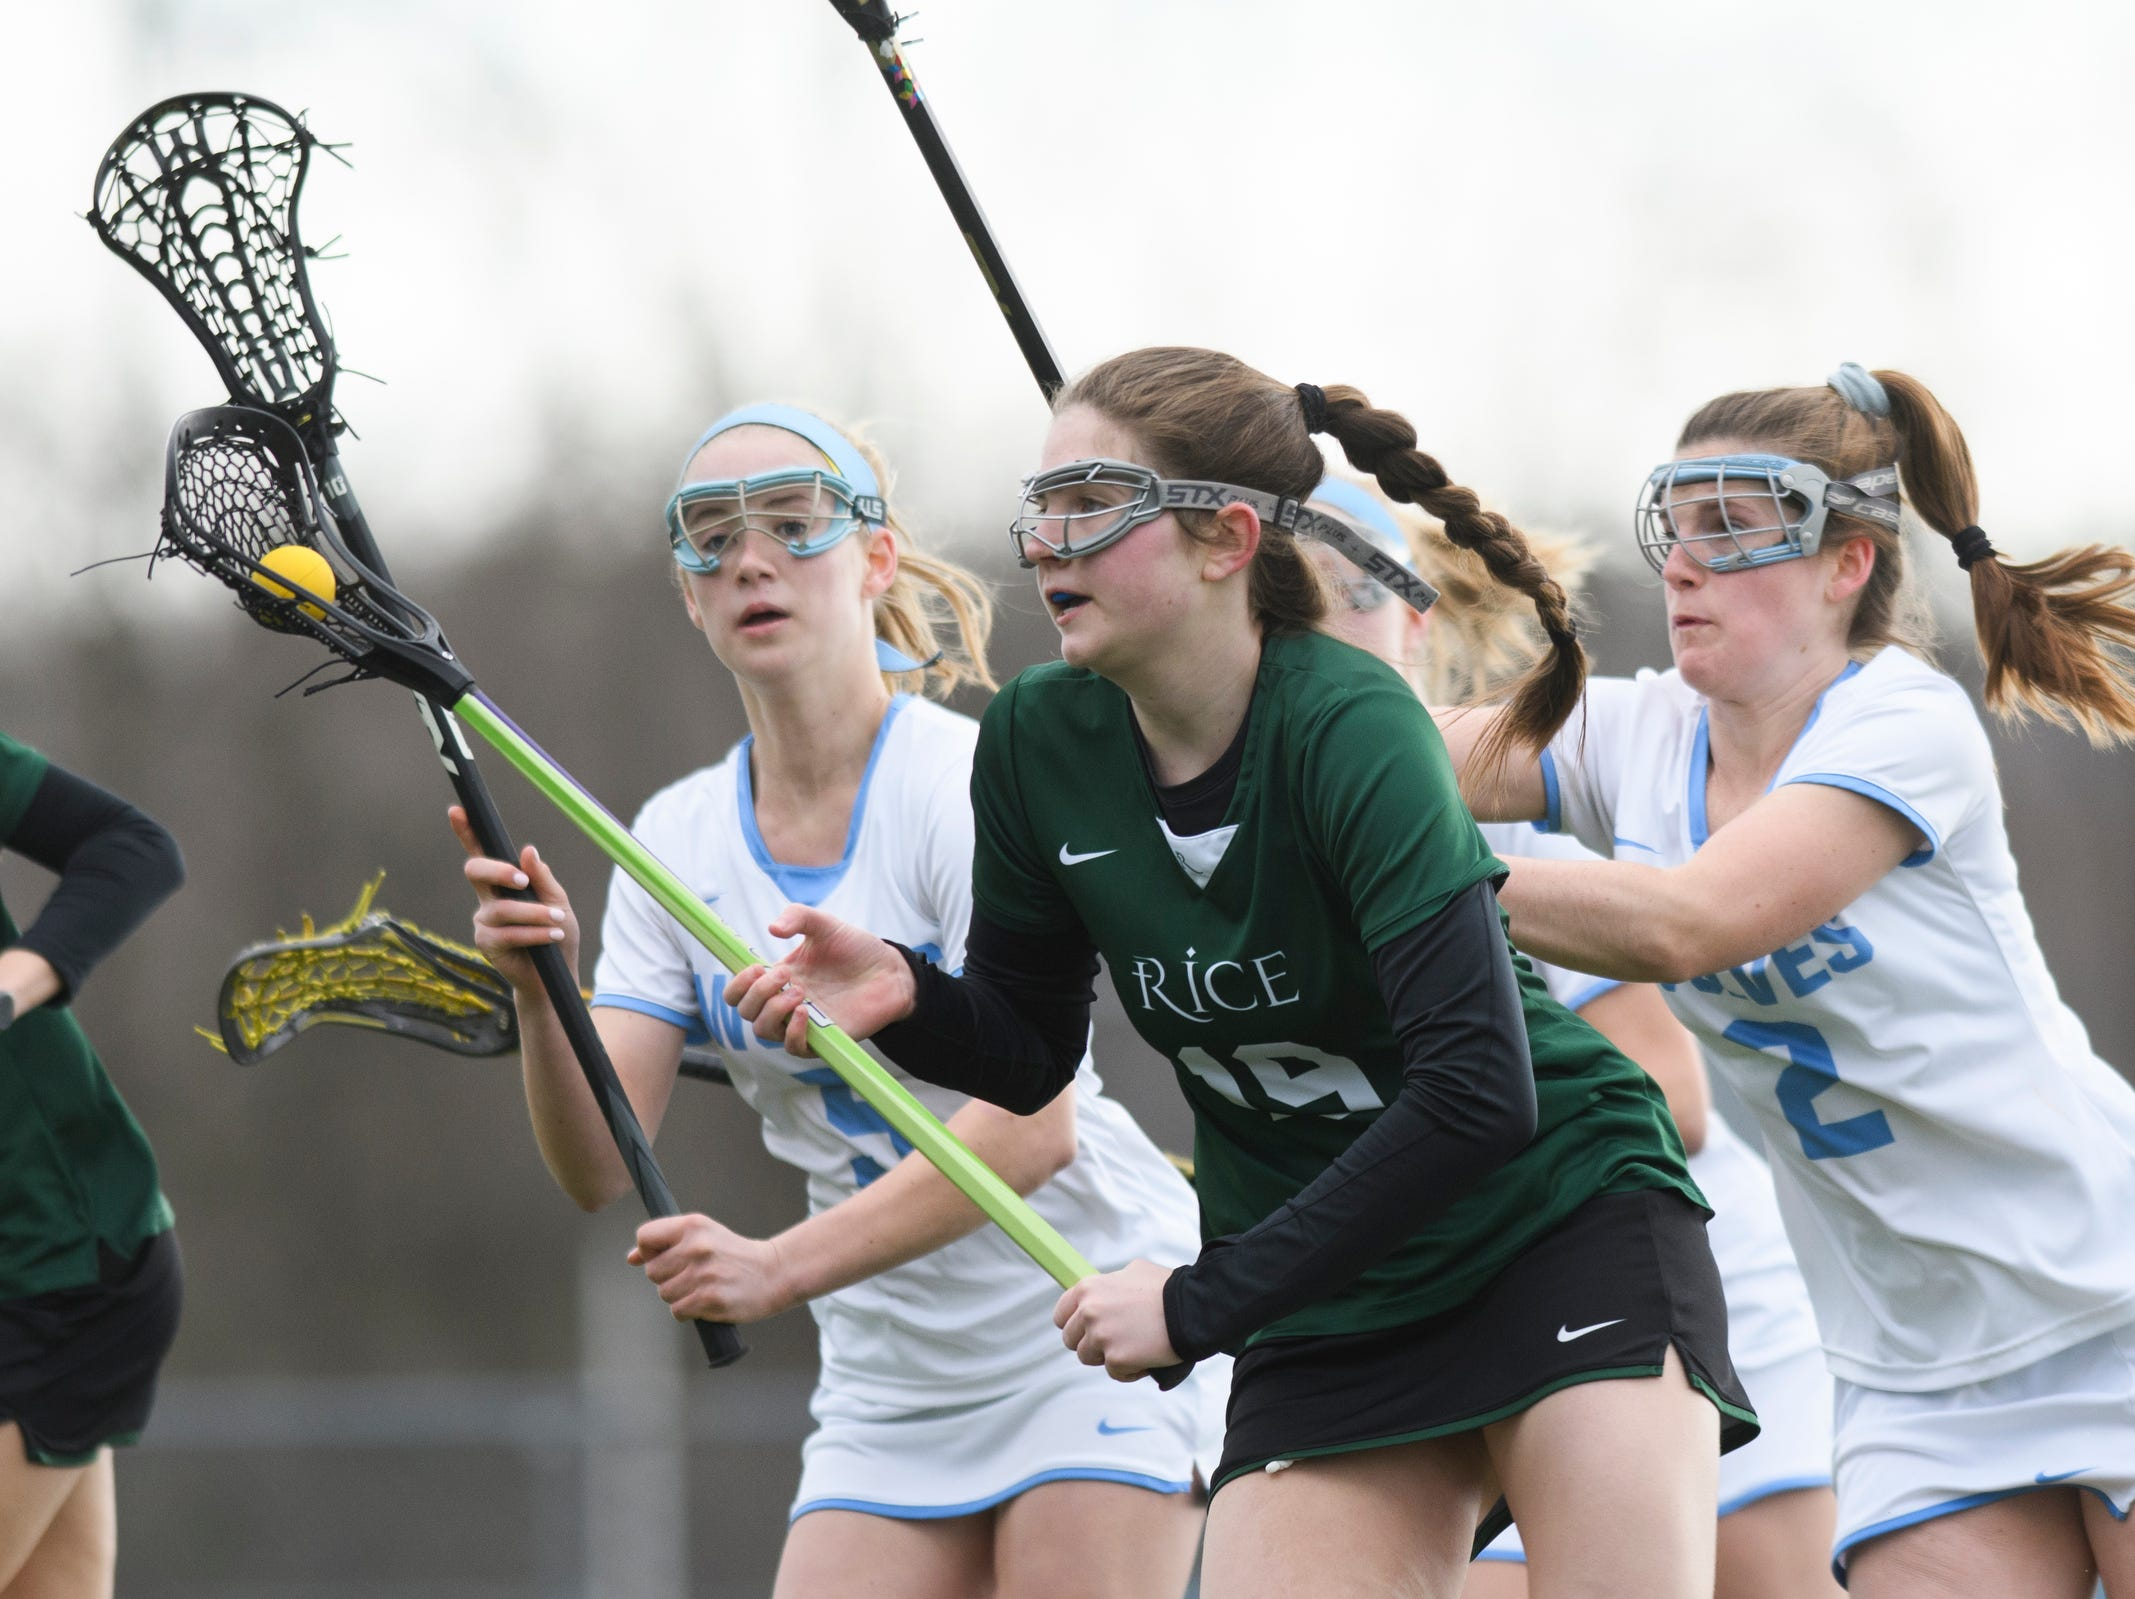 Rice's Sarah Holmes (19) runs down the field with the ball during the girls lacrosse game between the Rice Green Knights and the South Burlington Wolves at South Burlington High School on Tuesday afternoon April 16, 2019 in South Burlington, Vermont.